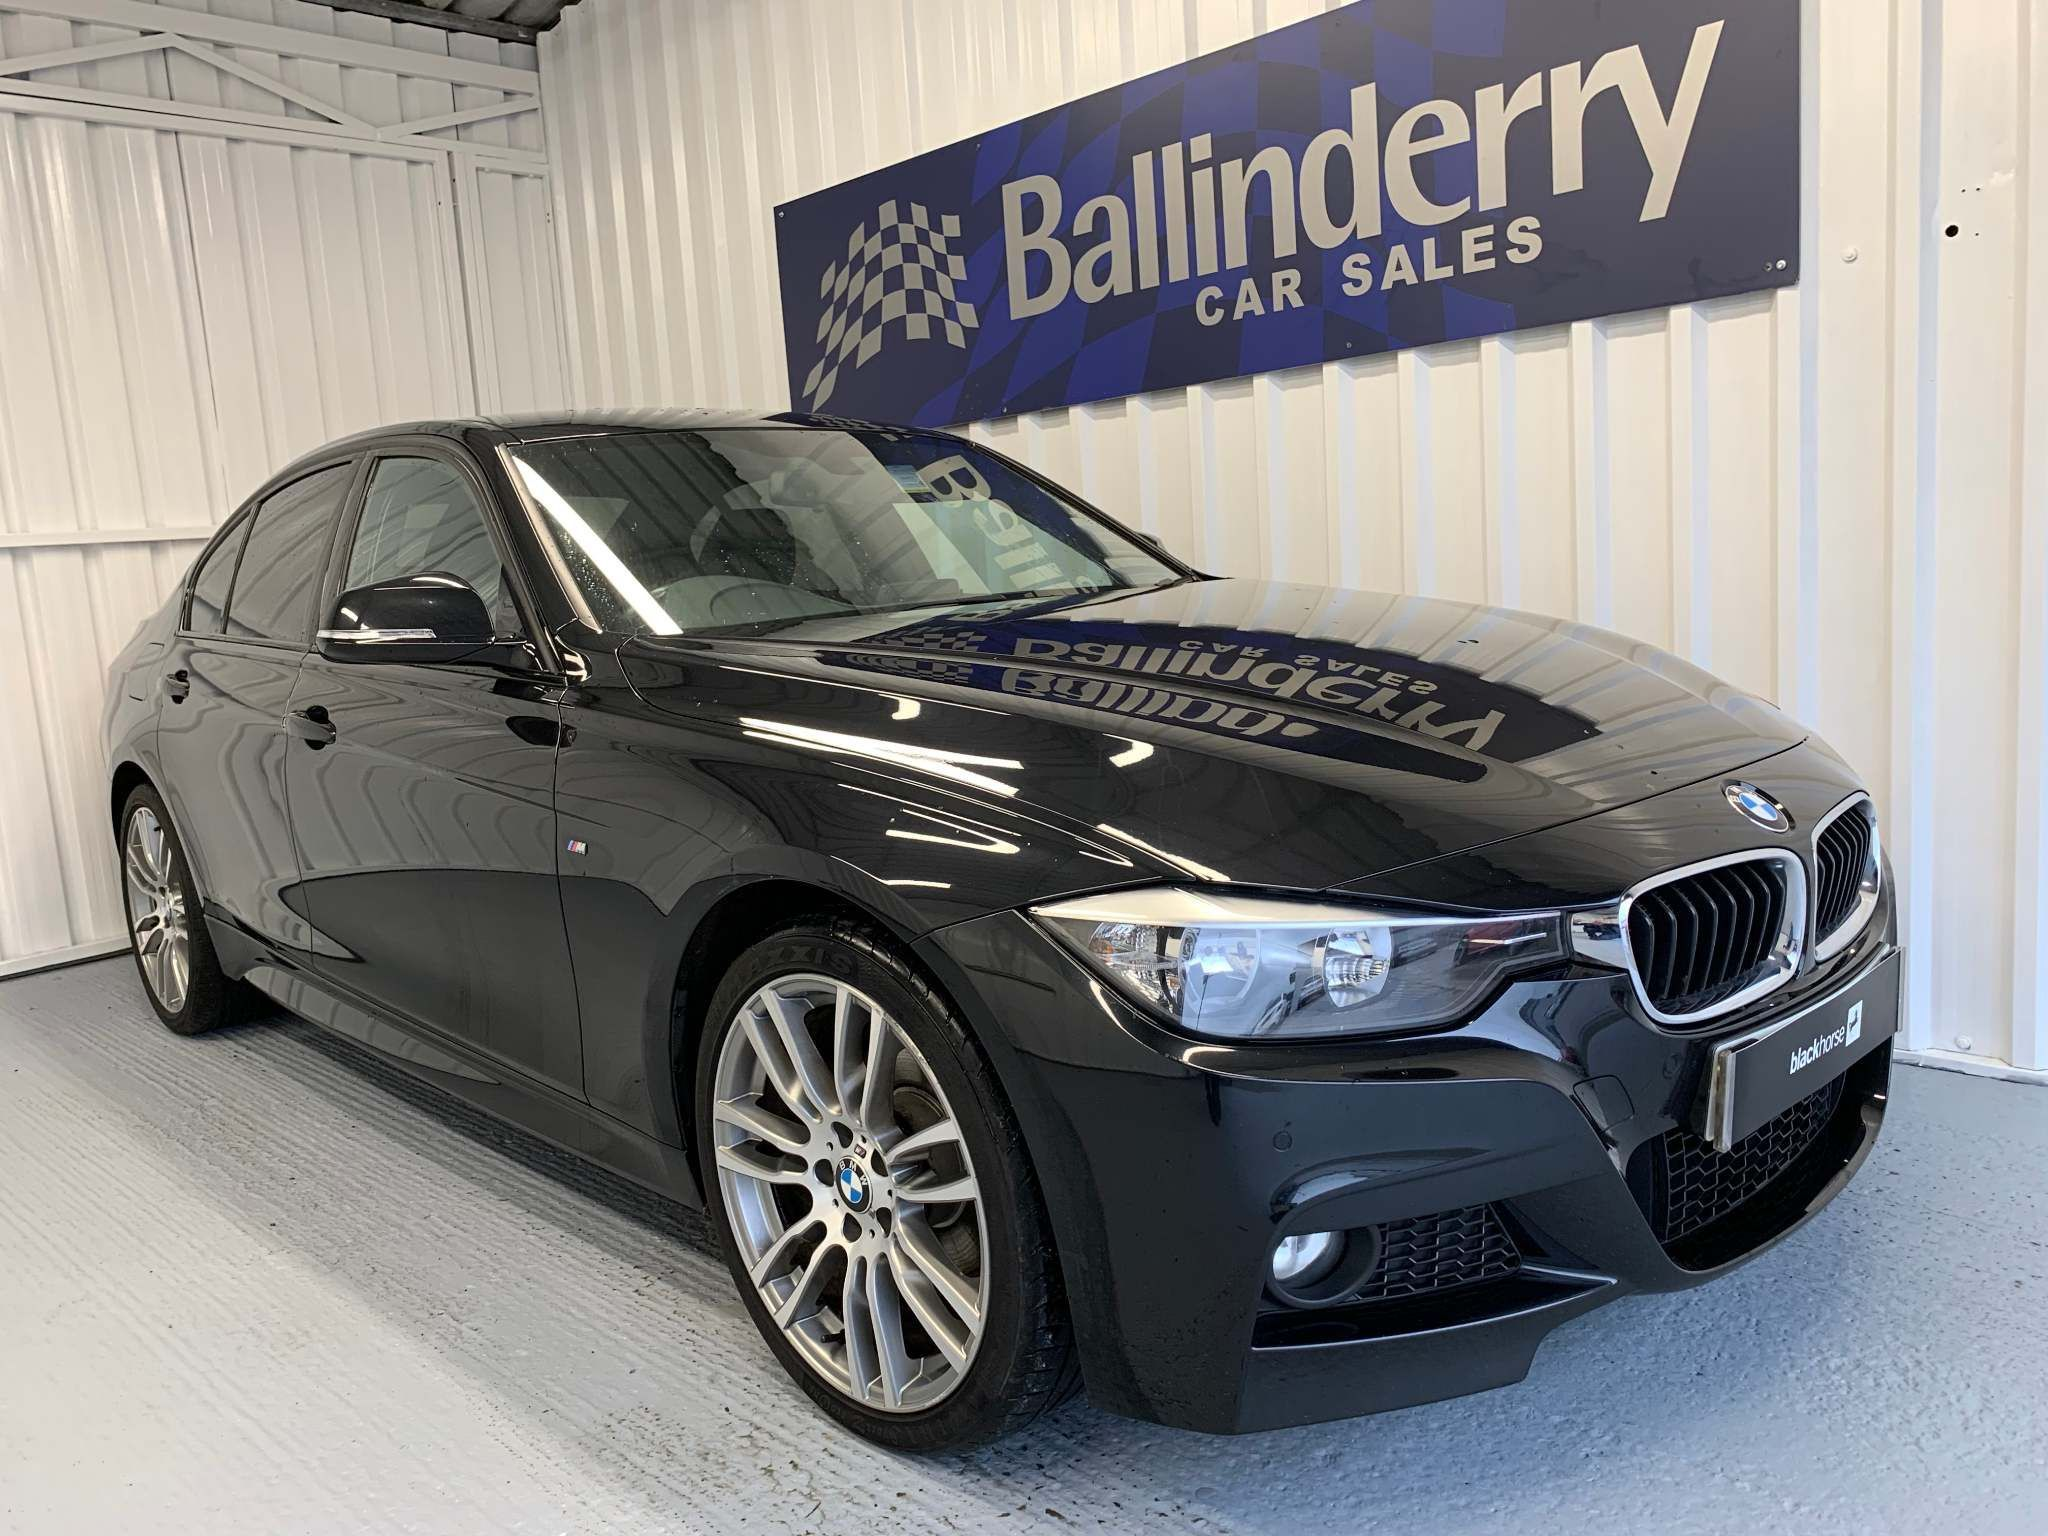 2012 BMW 3 Series 2.0 320i M Sport xDrive Petrol Manual 19″ALLOYS-LEATHER-4WD – Ballinderry Car Sales Moira